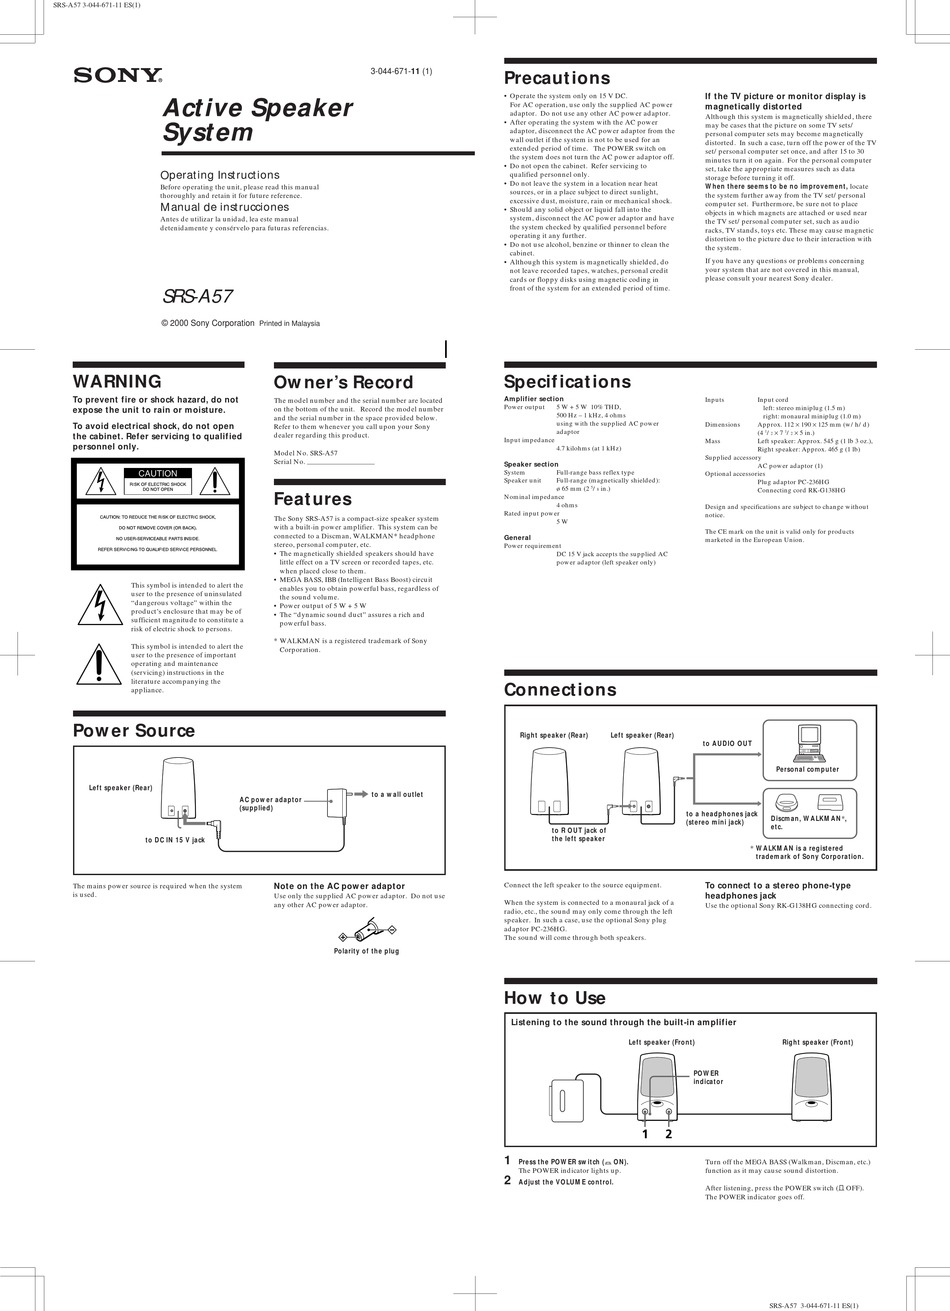 SONY ACTIVE SRS-A57 OPERATING INSTRUCTIONS Pdf Download